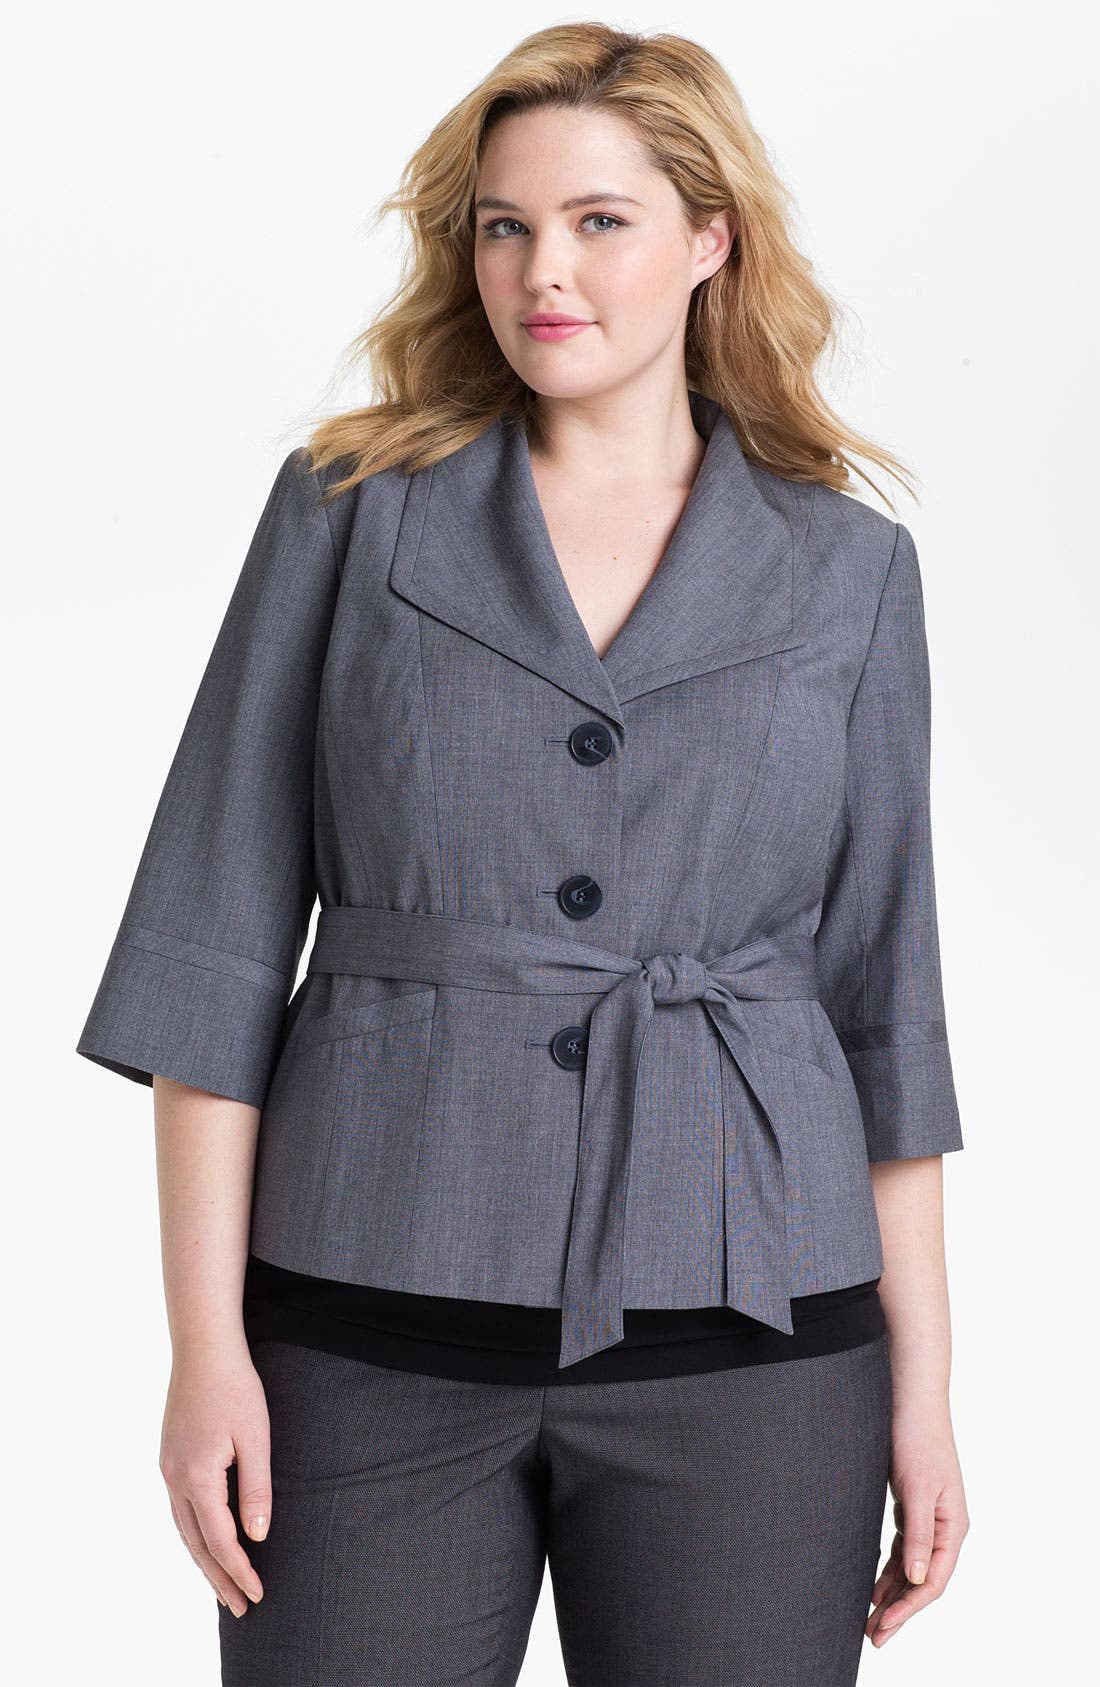 Alternate Image 1 Selected - Sejour 'Laurel' Twill Jacket (Plus Size)